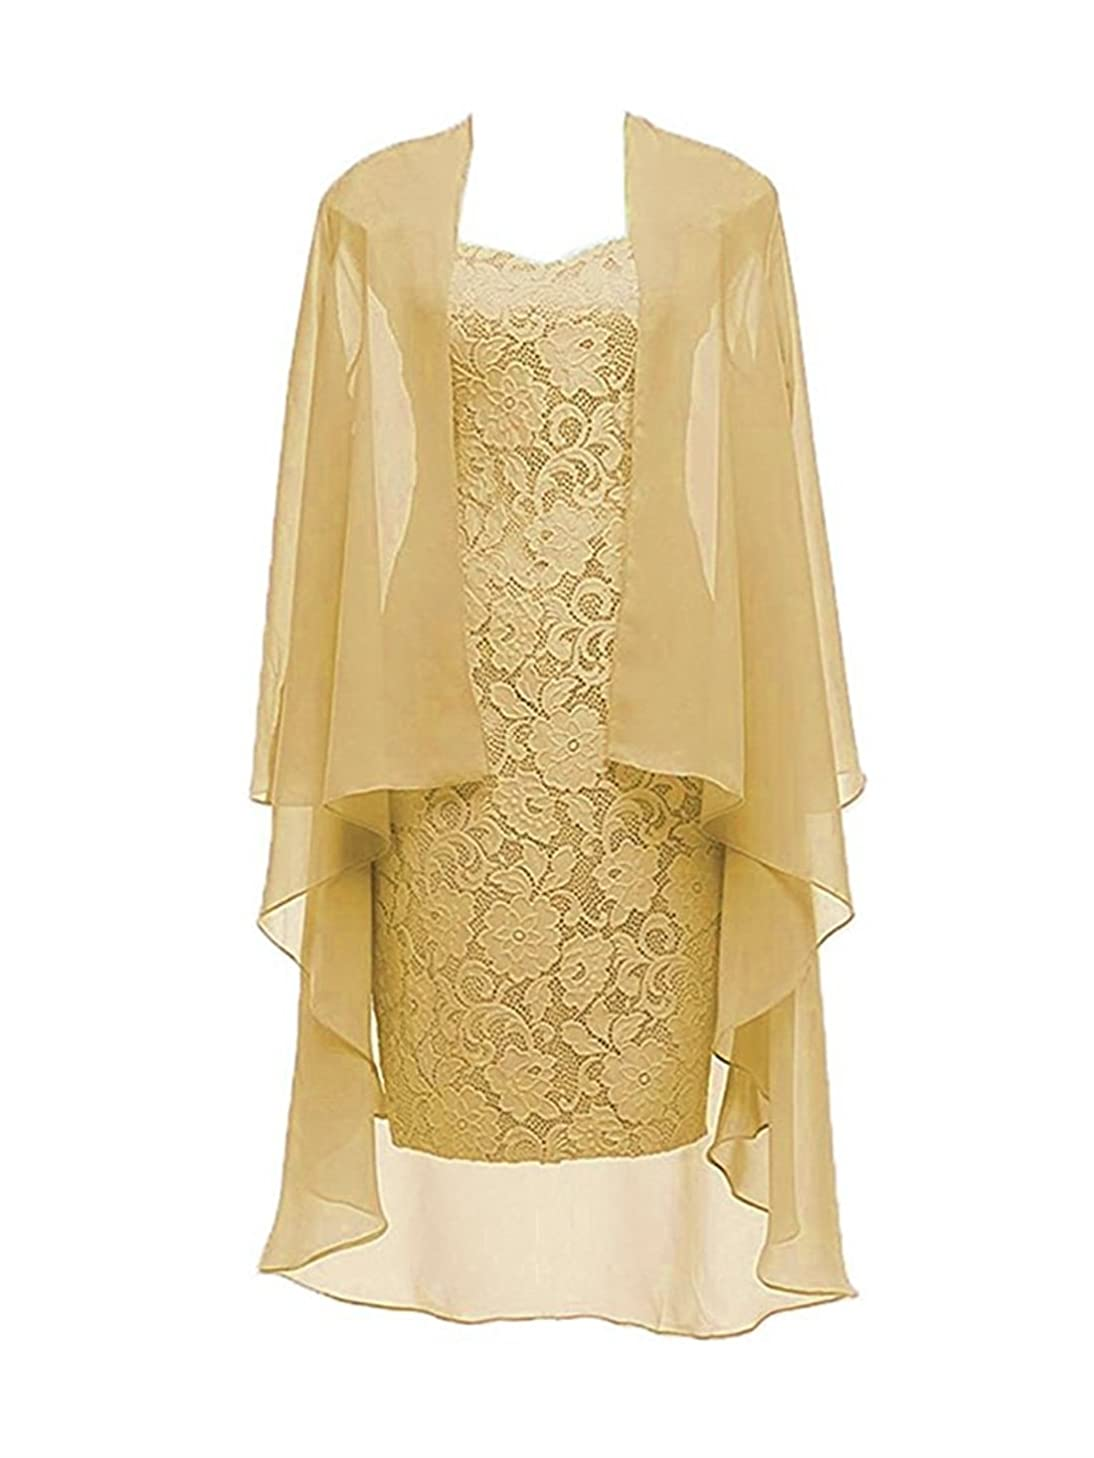 Dannifore 2 Pieces Lace Mother of The Bride Dress with Jacket Chiffon Formal Evening Dresses